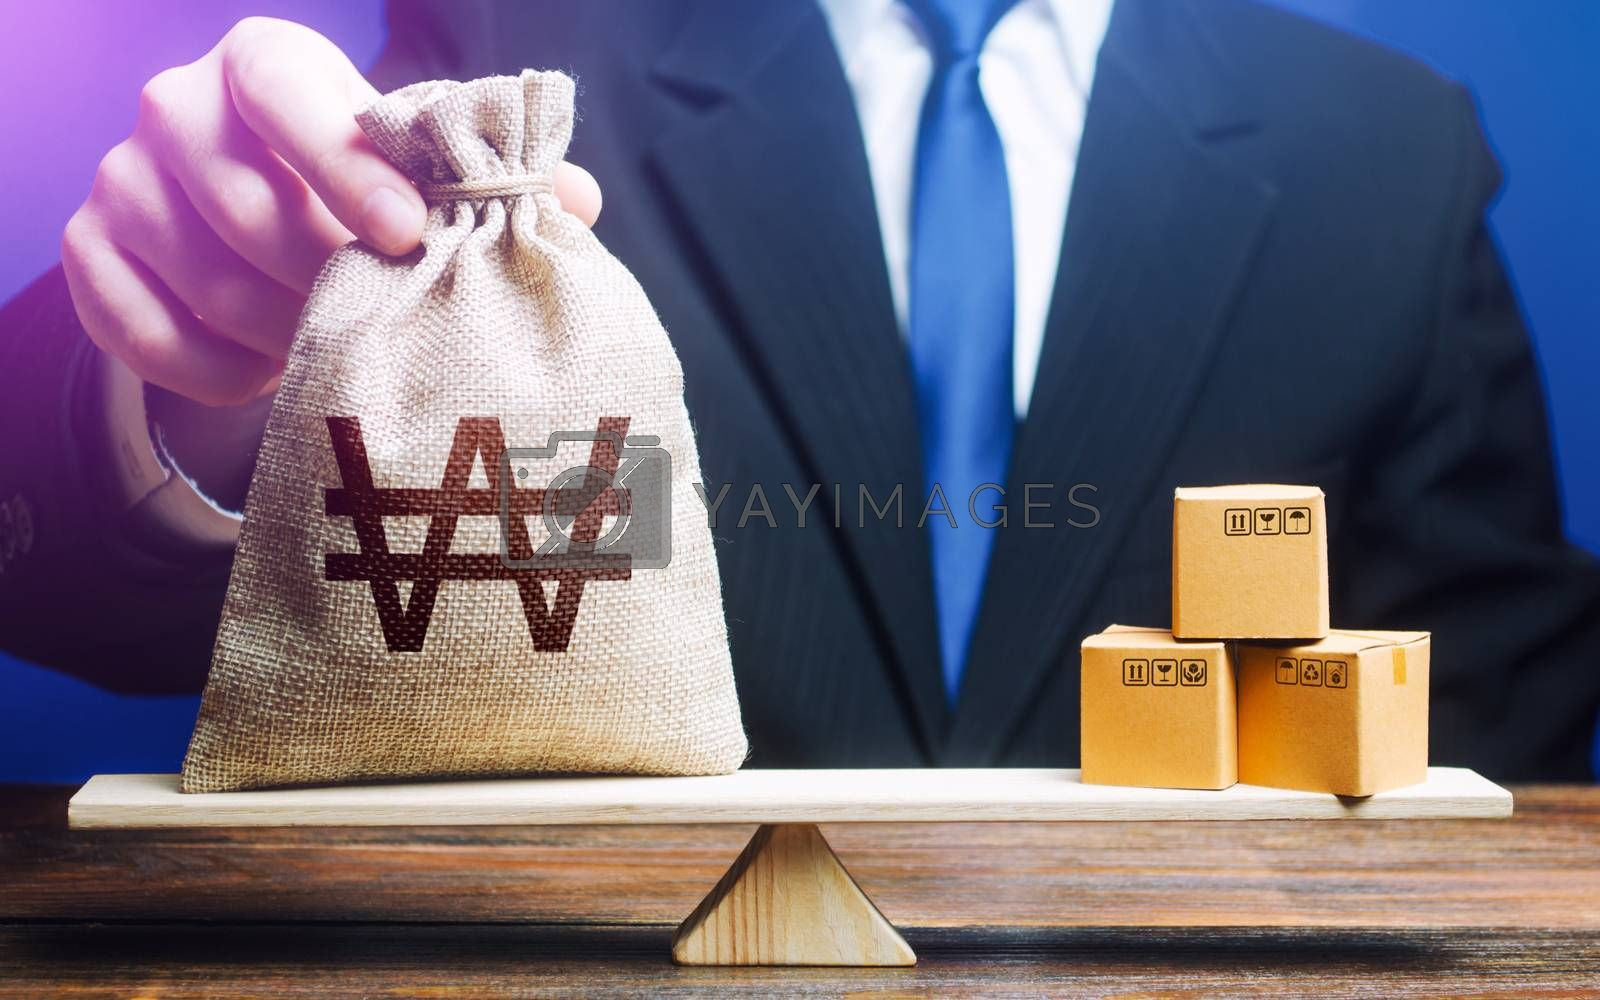 South korean won money bag and boxes on scales. Trade balance and purchasing power. Import and export duties, profit from the sale of value added goods. Economic and industrial development. VAT